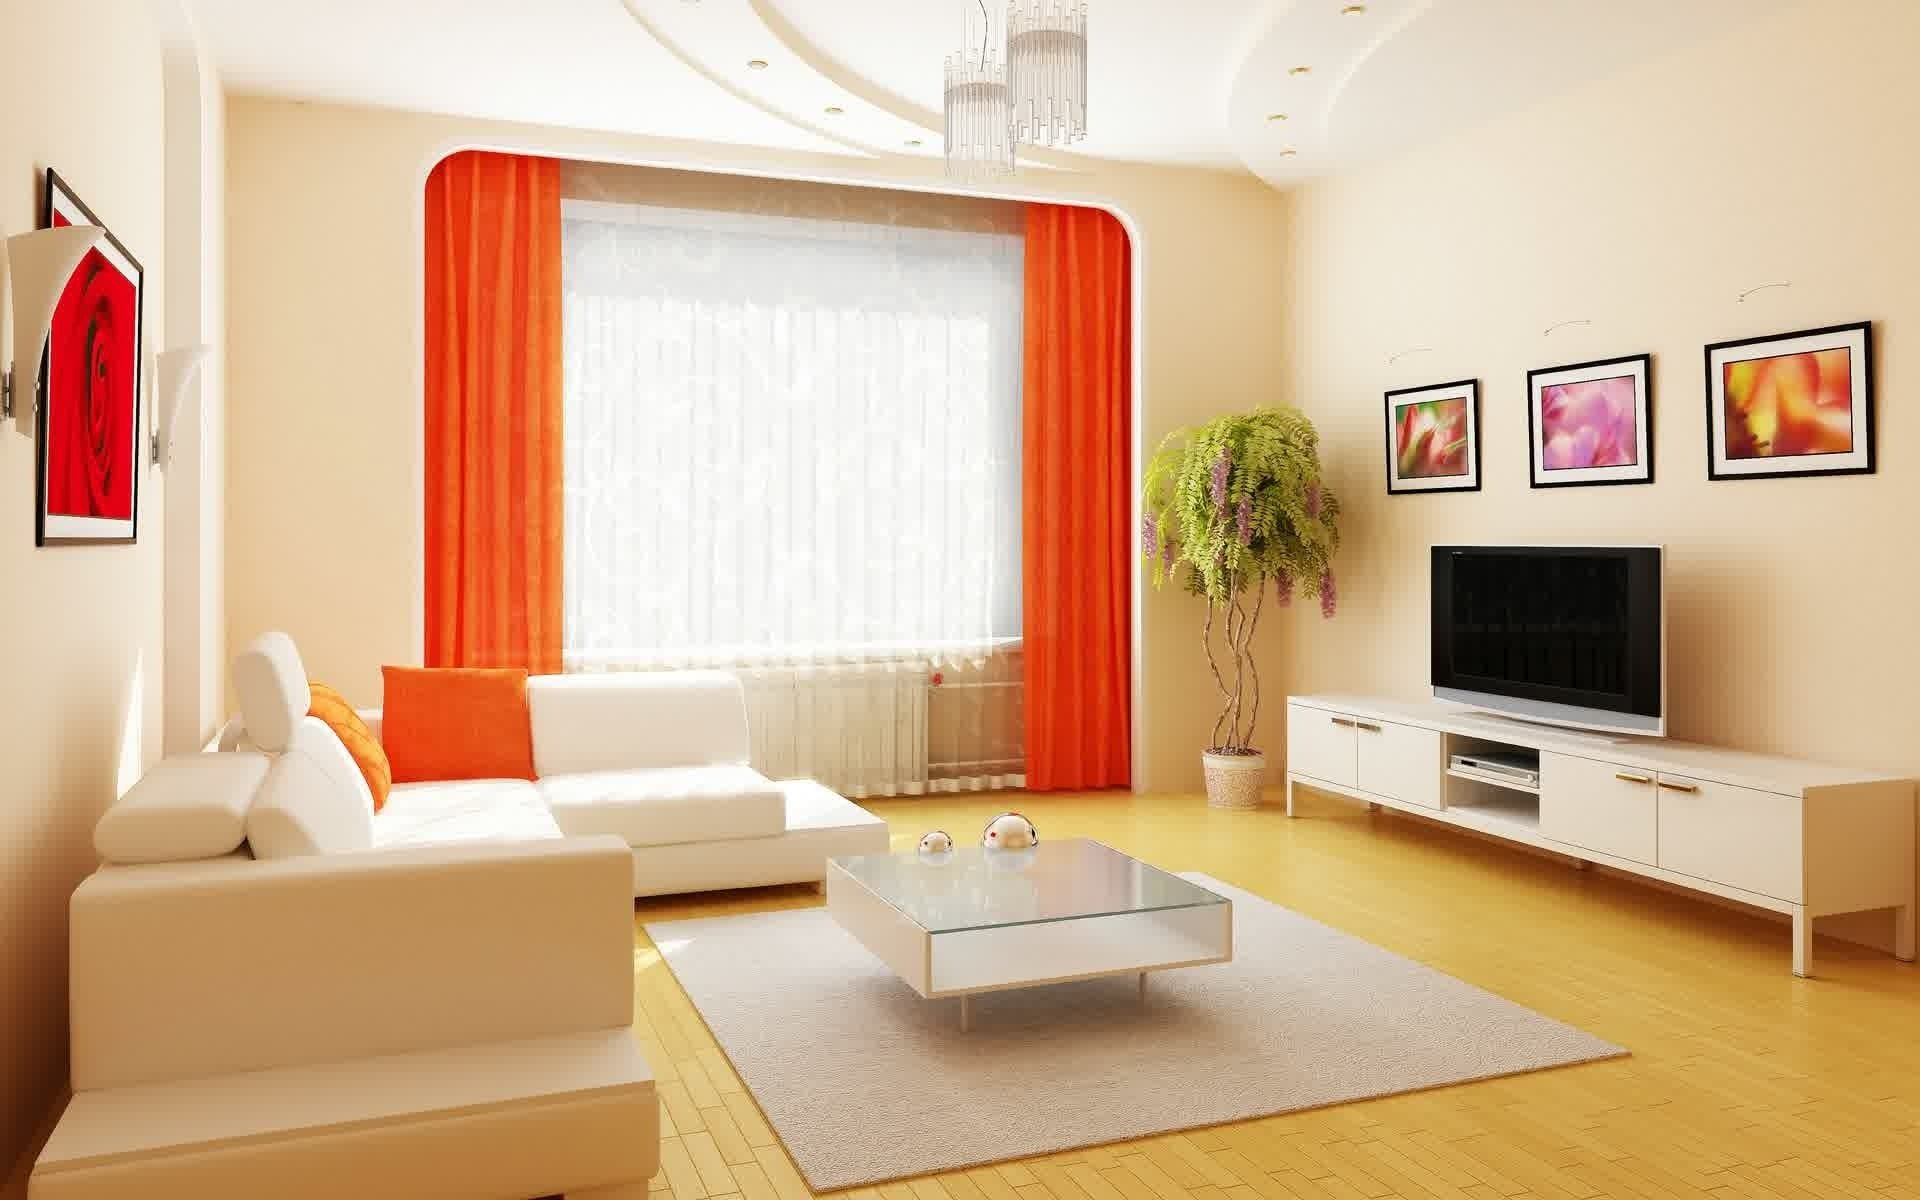 10 Most Recommended Living Room Wall Color Ideas living room ideas what color walls go with brown furniture living 2020